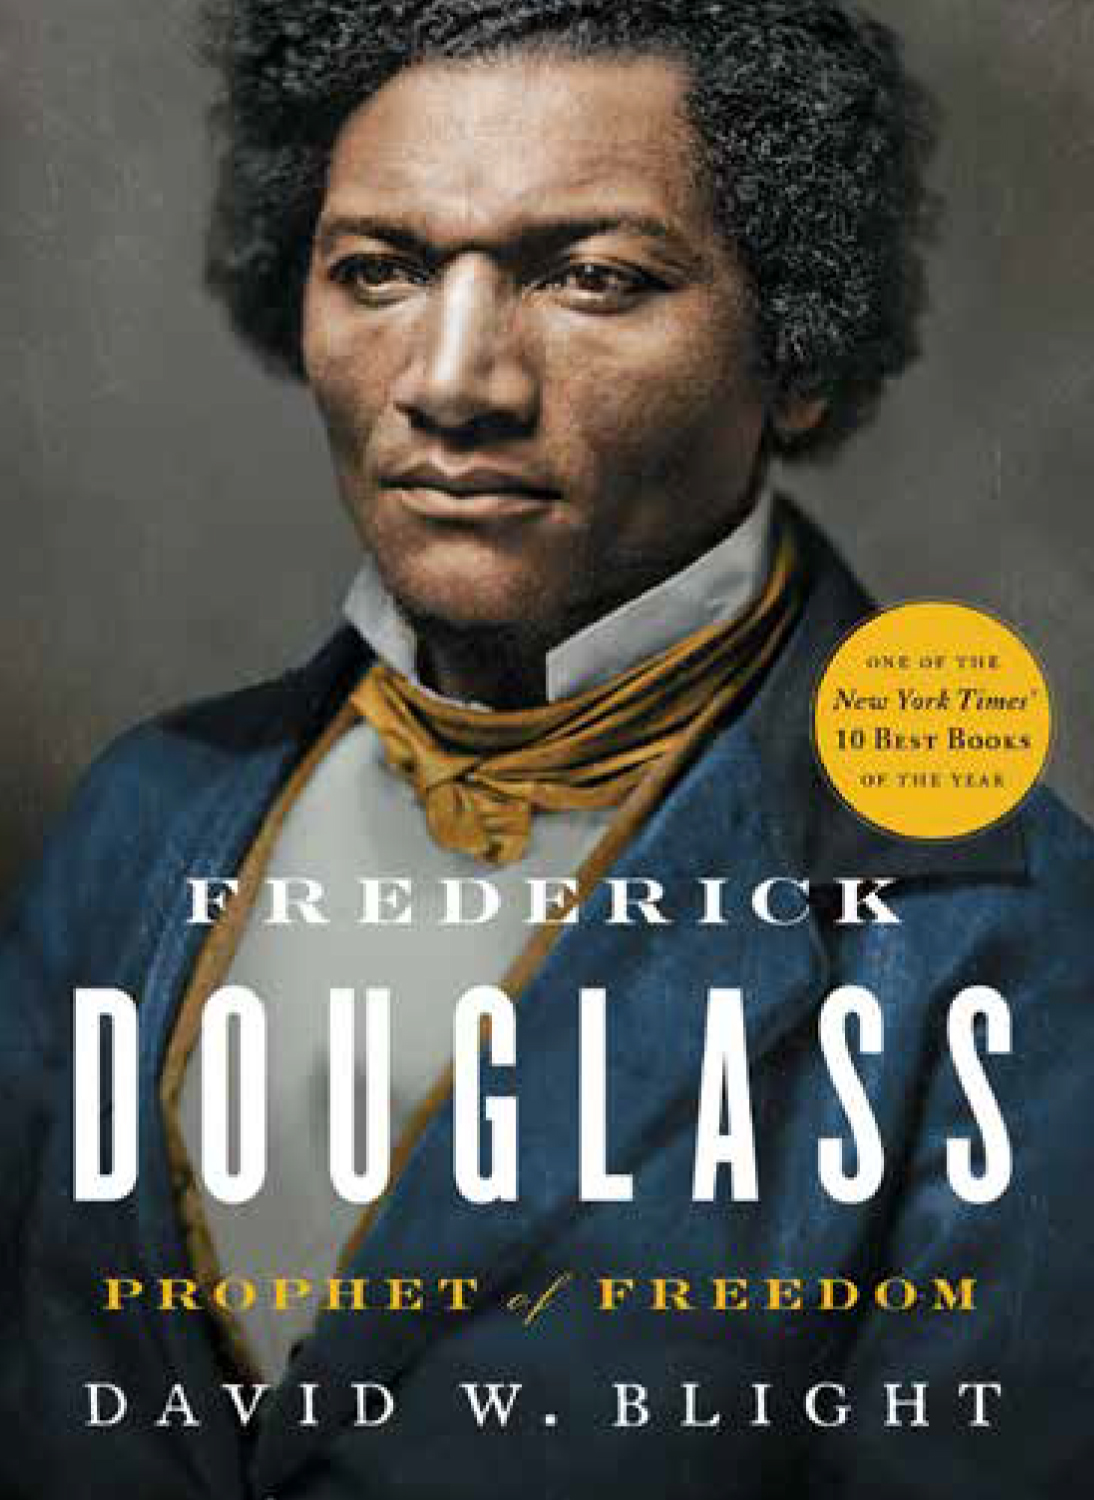 Frederick Douglas: Prophet of Freedom - A talk and book signing with David Blight